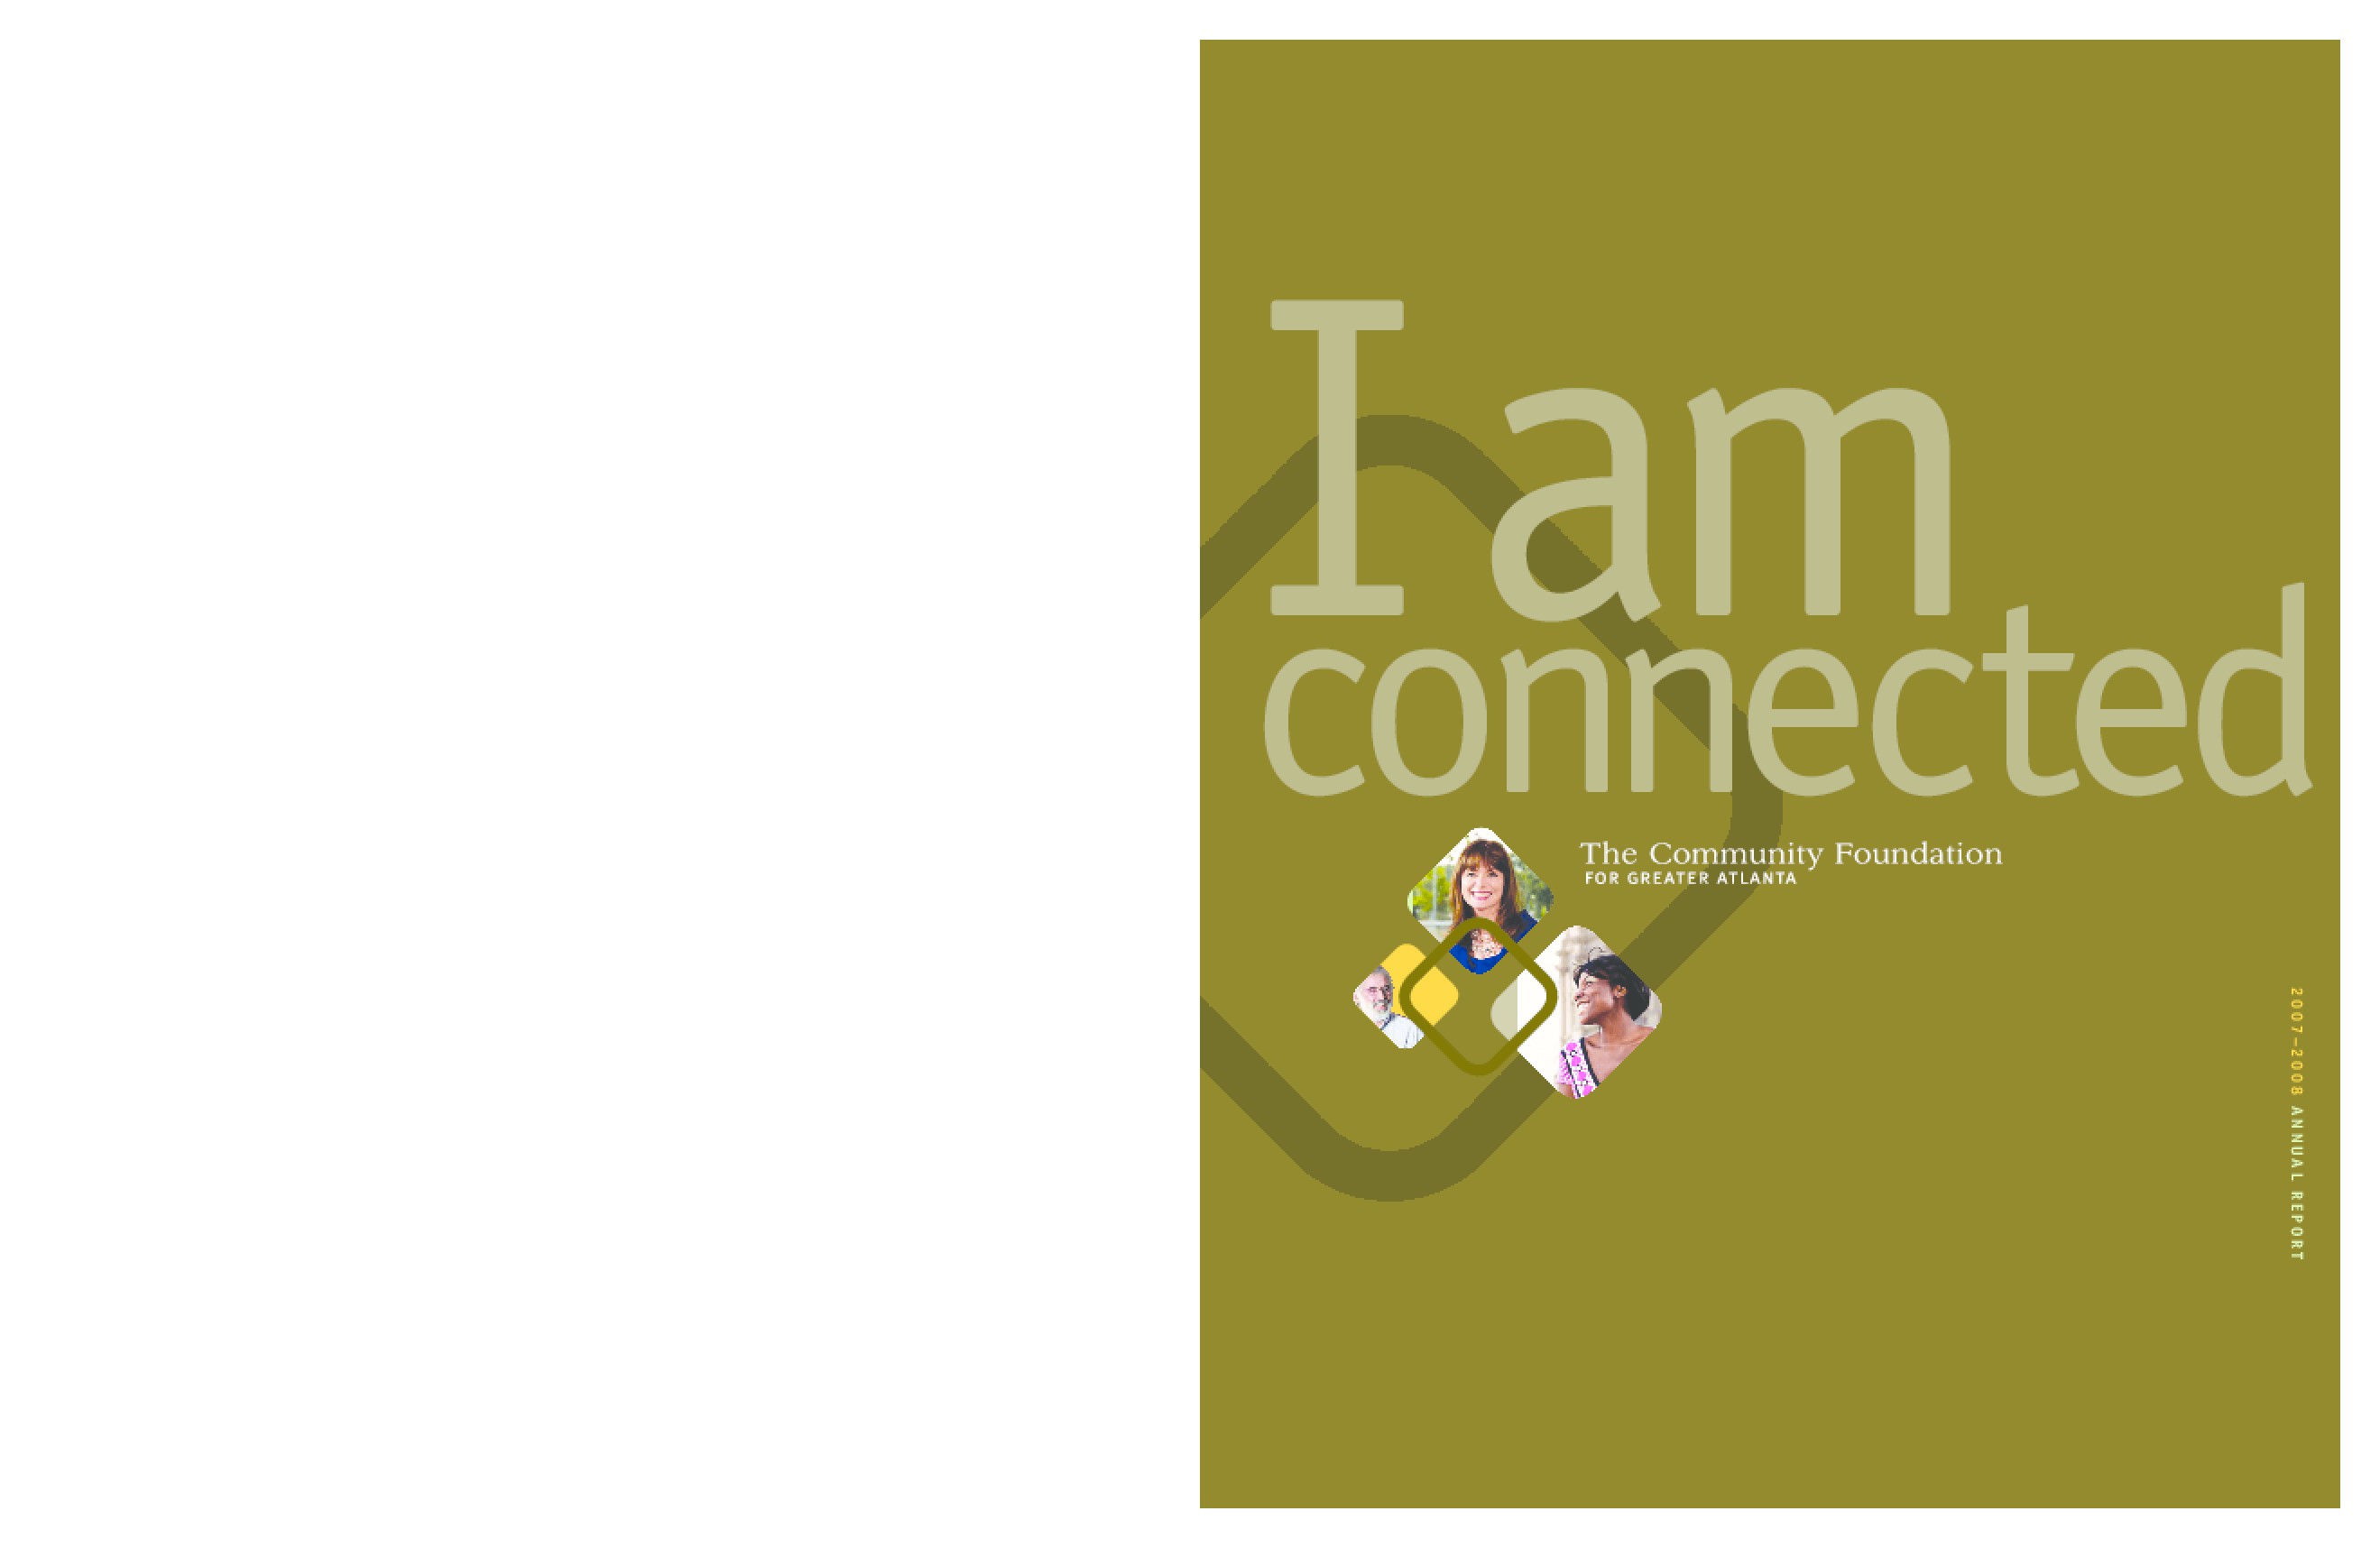 Community Foundation for Greater Atlanta - 2007-2008 Annual Report: I Am Connected